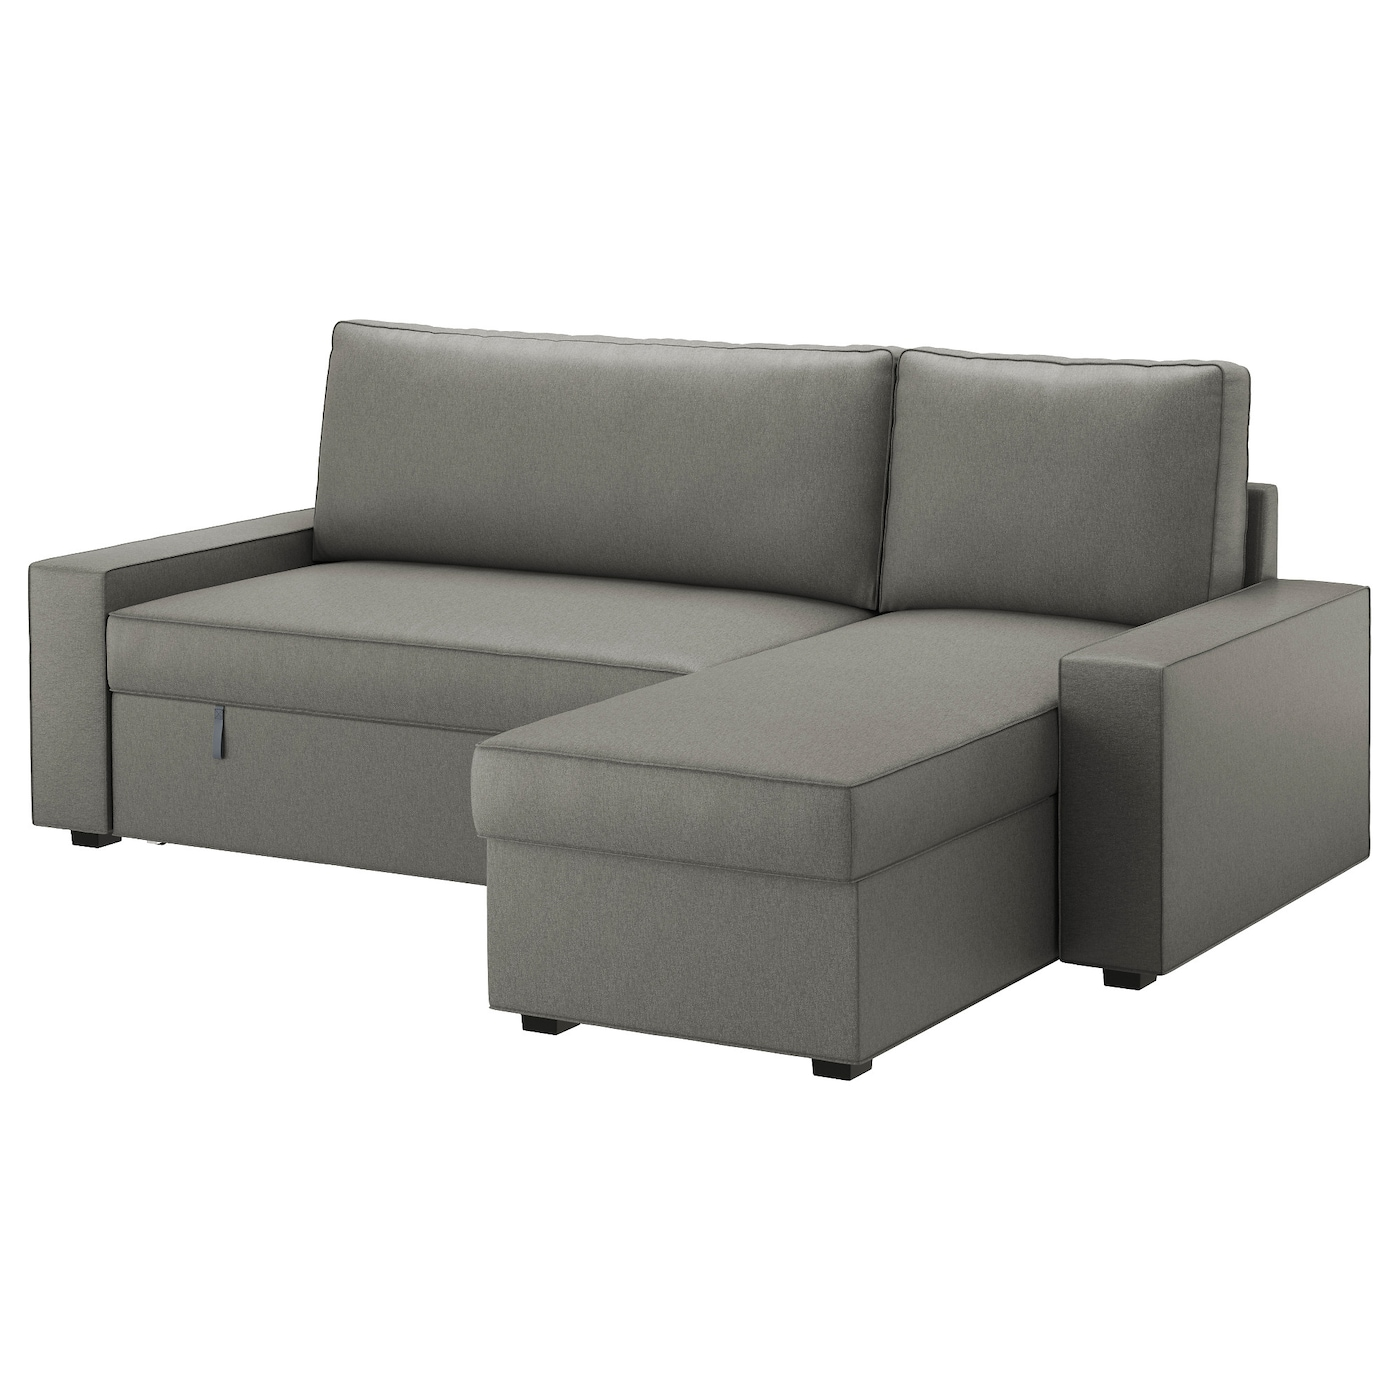 Vilasund sofa bed with chaise longue borred grey green ikea for Chaise sofa bed